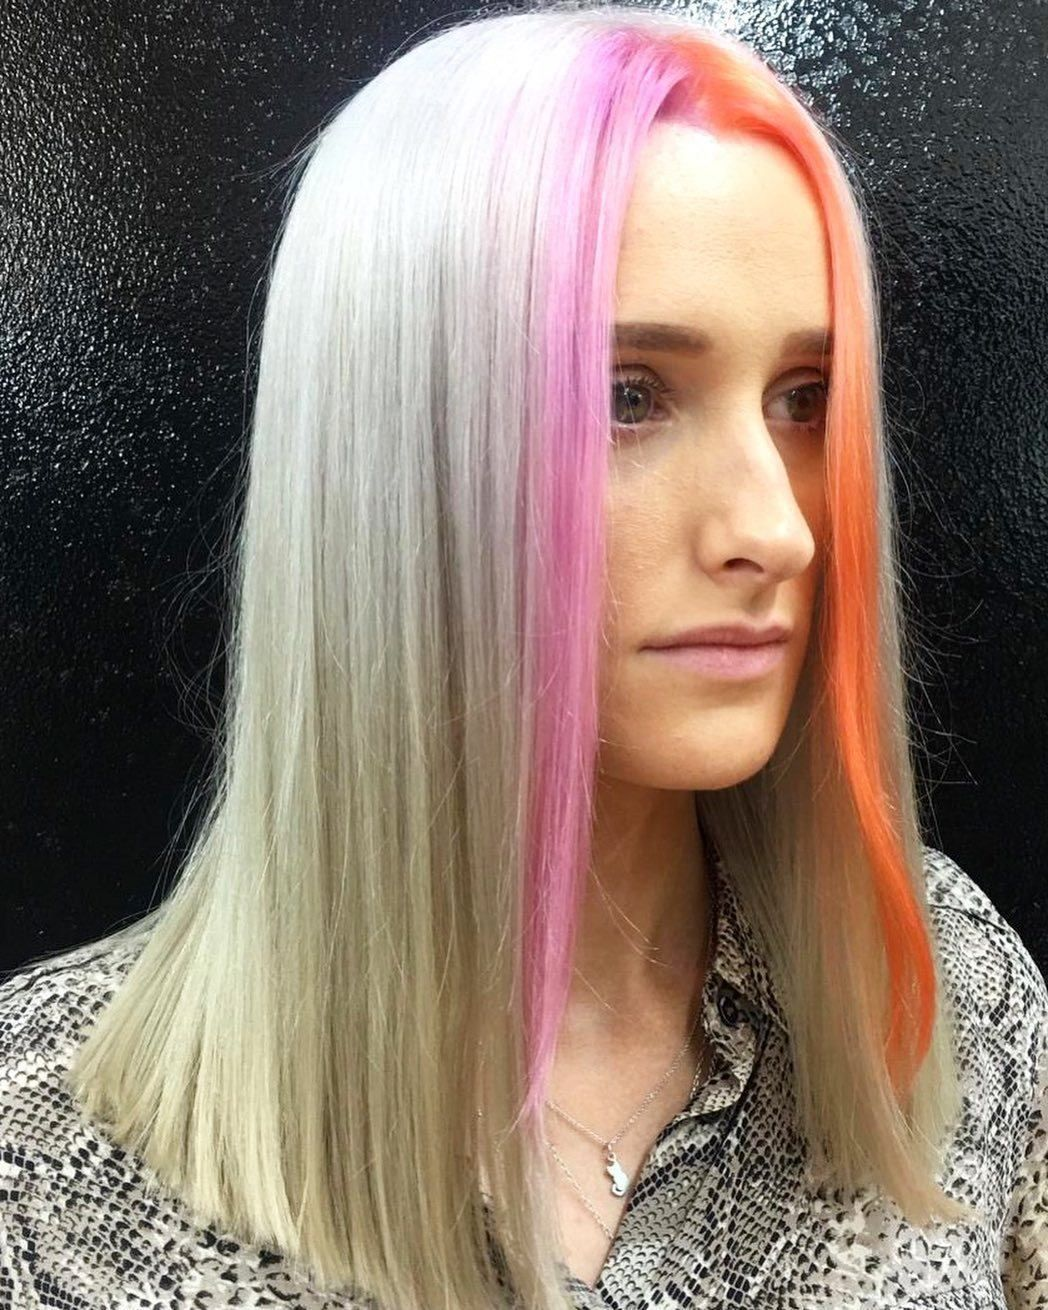 E Girl Hairstyles Are You Brave Enough To Try Tiktok S Latest Hair Trend In 2020 Hair Styles Girl Hairstyles Hair Trends